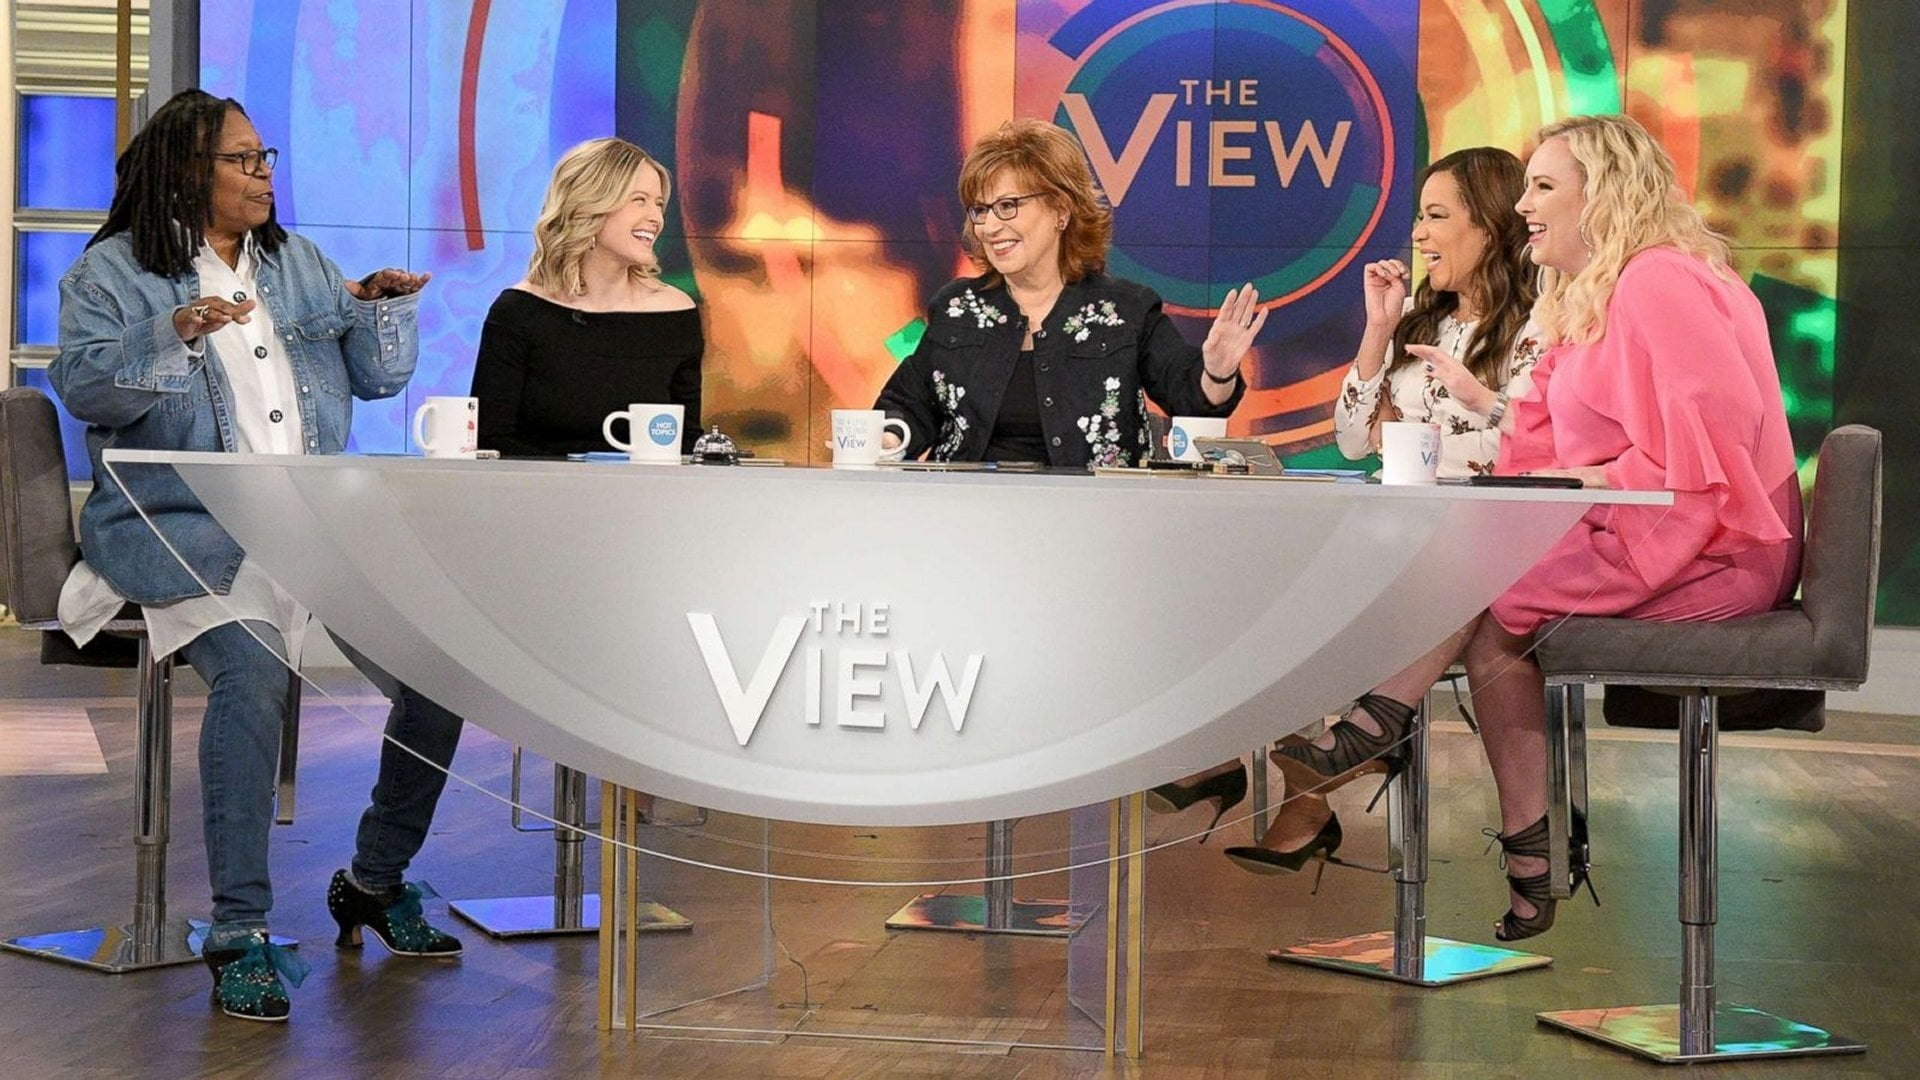 The View - Season 3 Episode 291 : Season 3, Episode 291